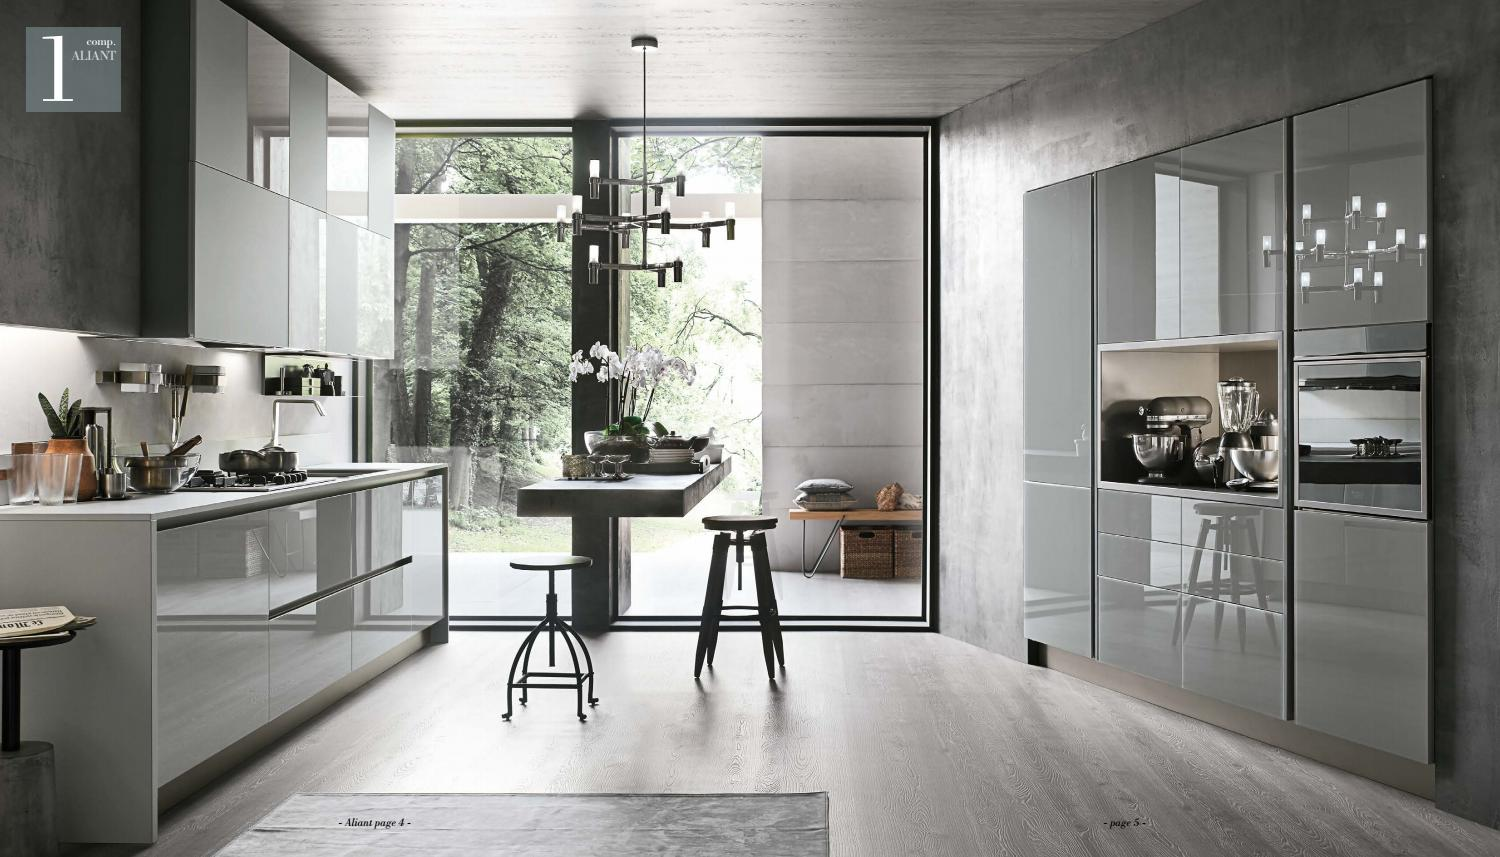 Catalogo moderno cucine stosa unico by progettocasaid issuu for Cucine catalogo